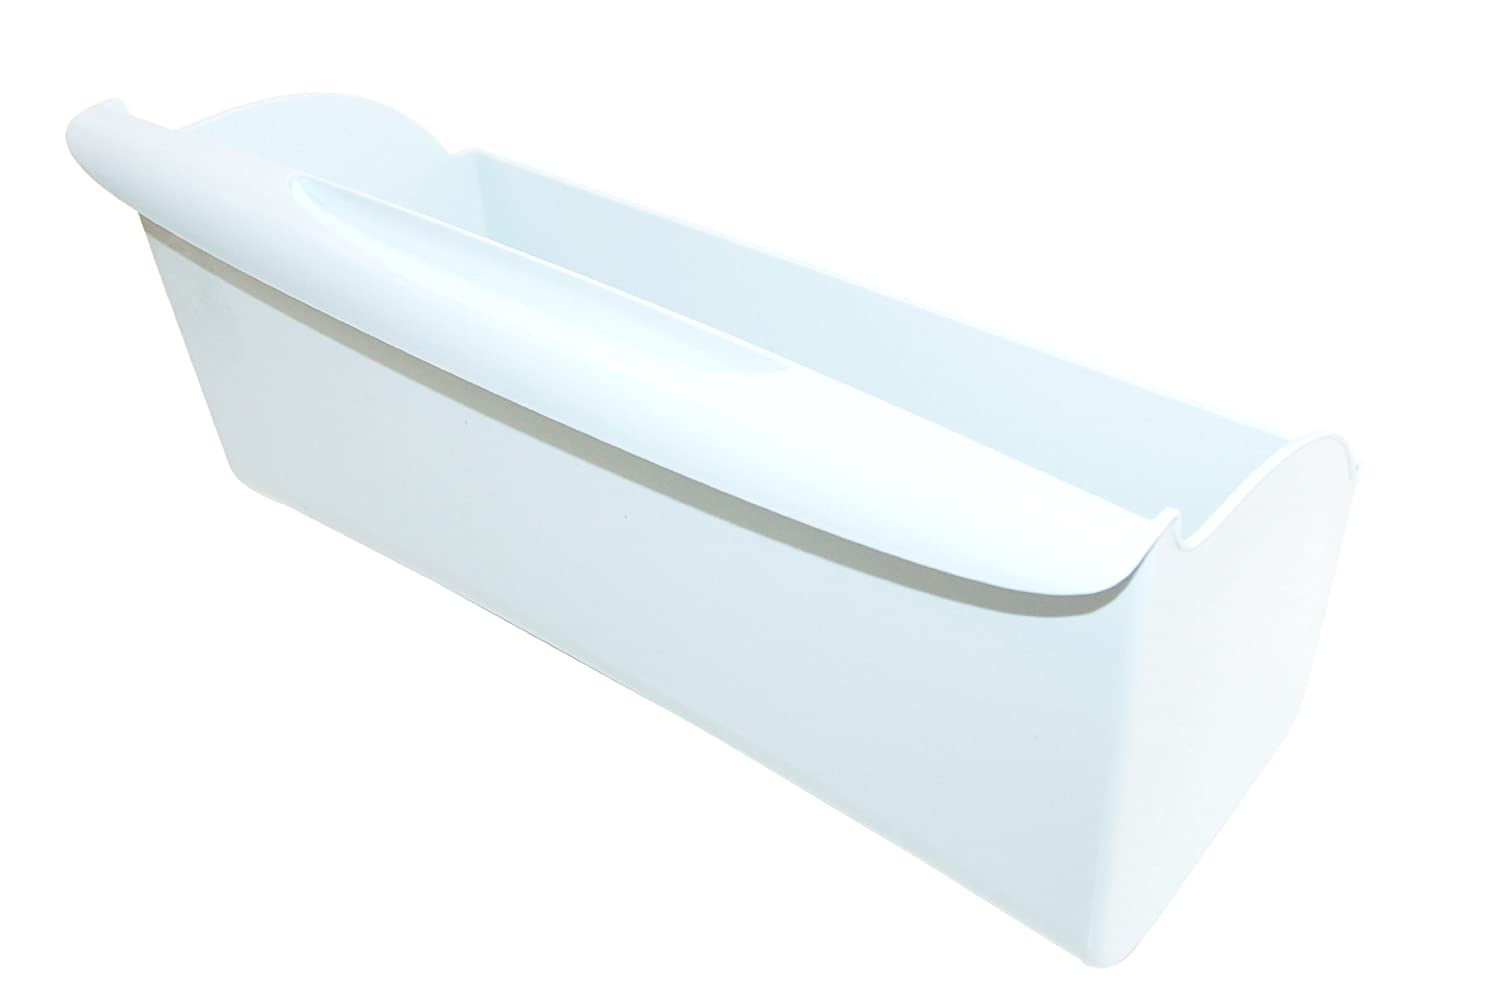 Hotpoint C00111367 refrigerator accessories, drawers, refrigeration salad and vegetable bin